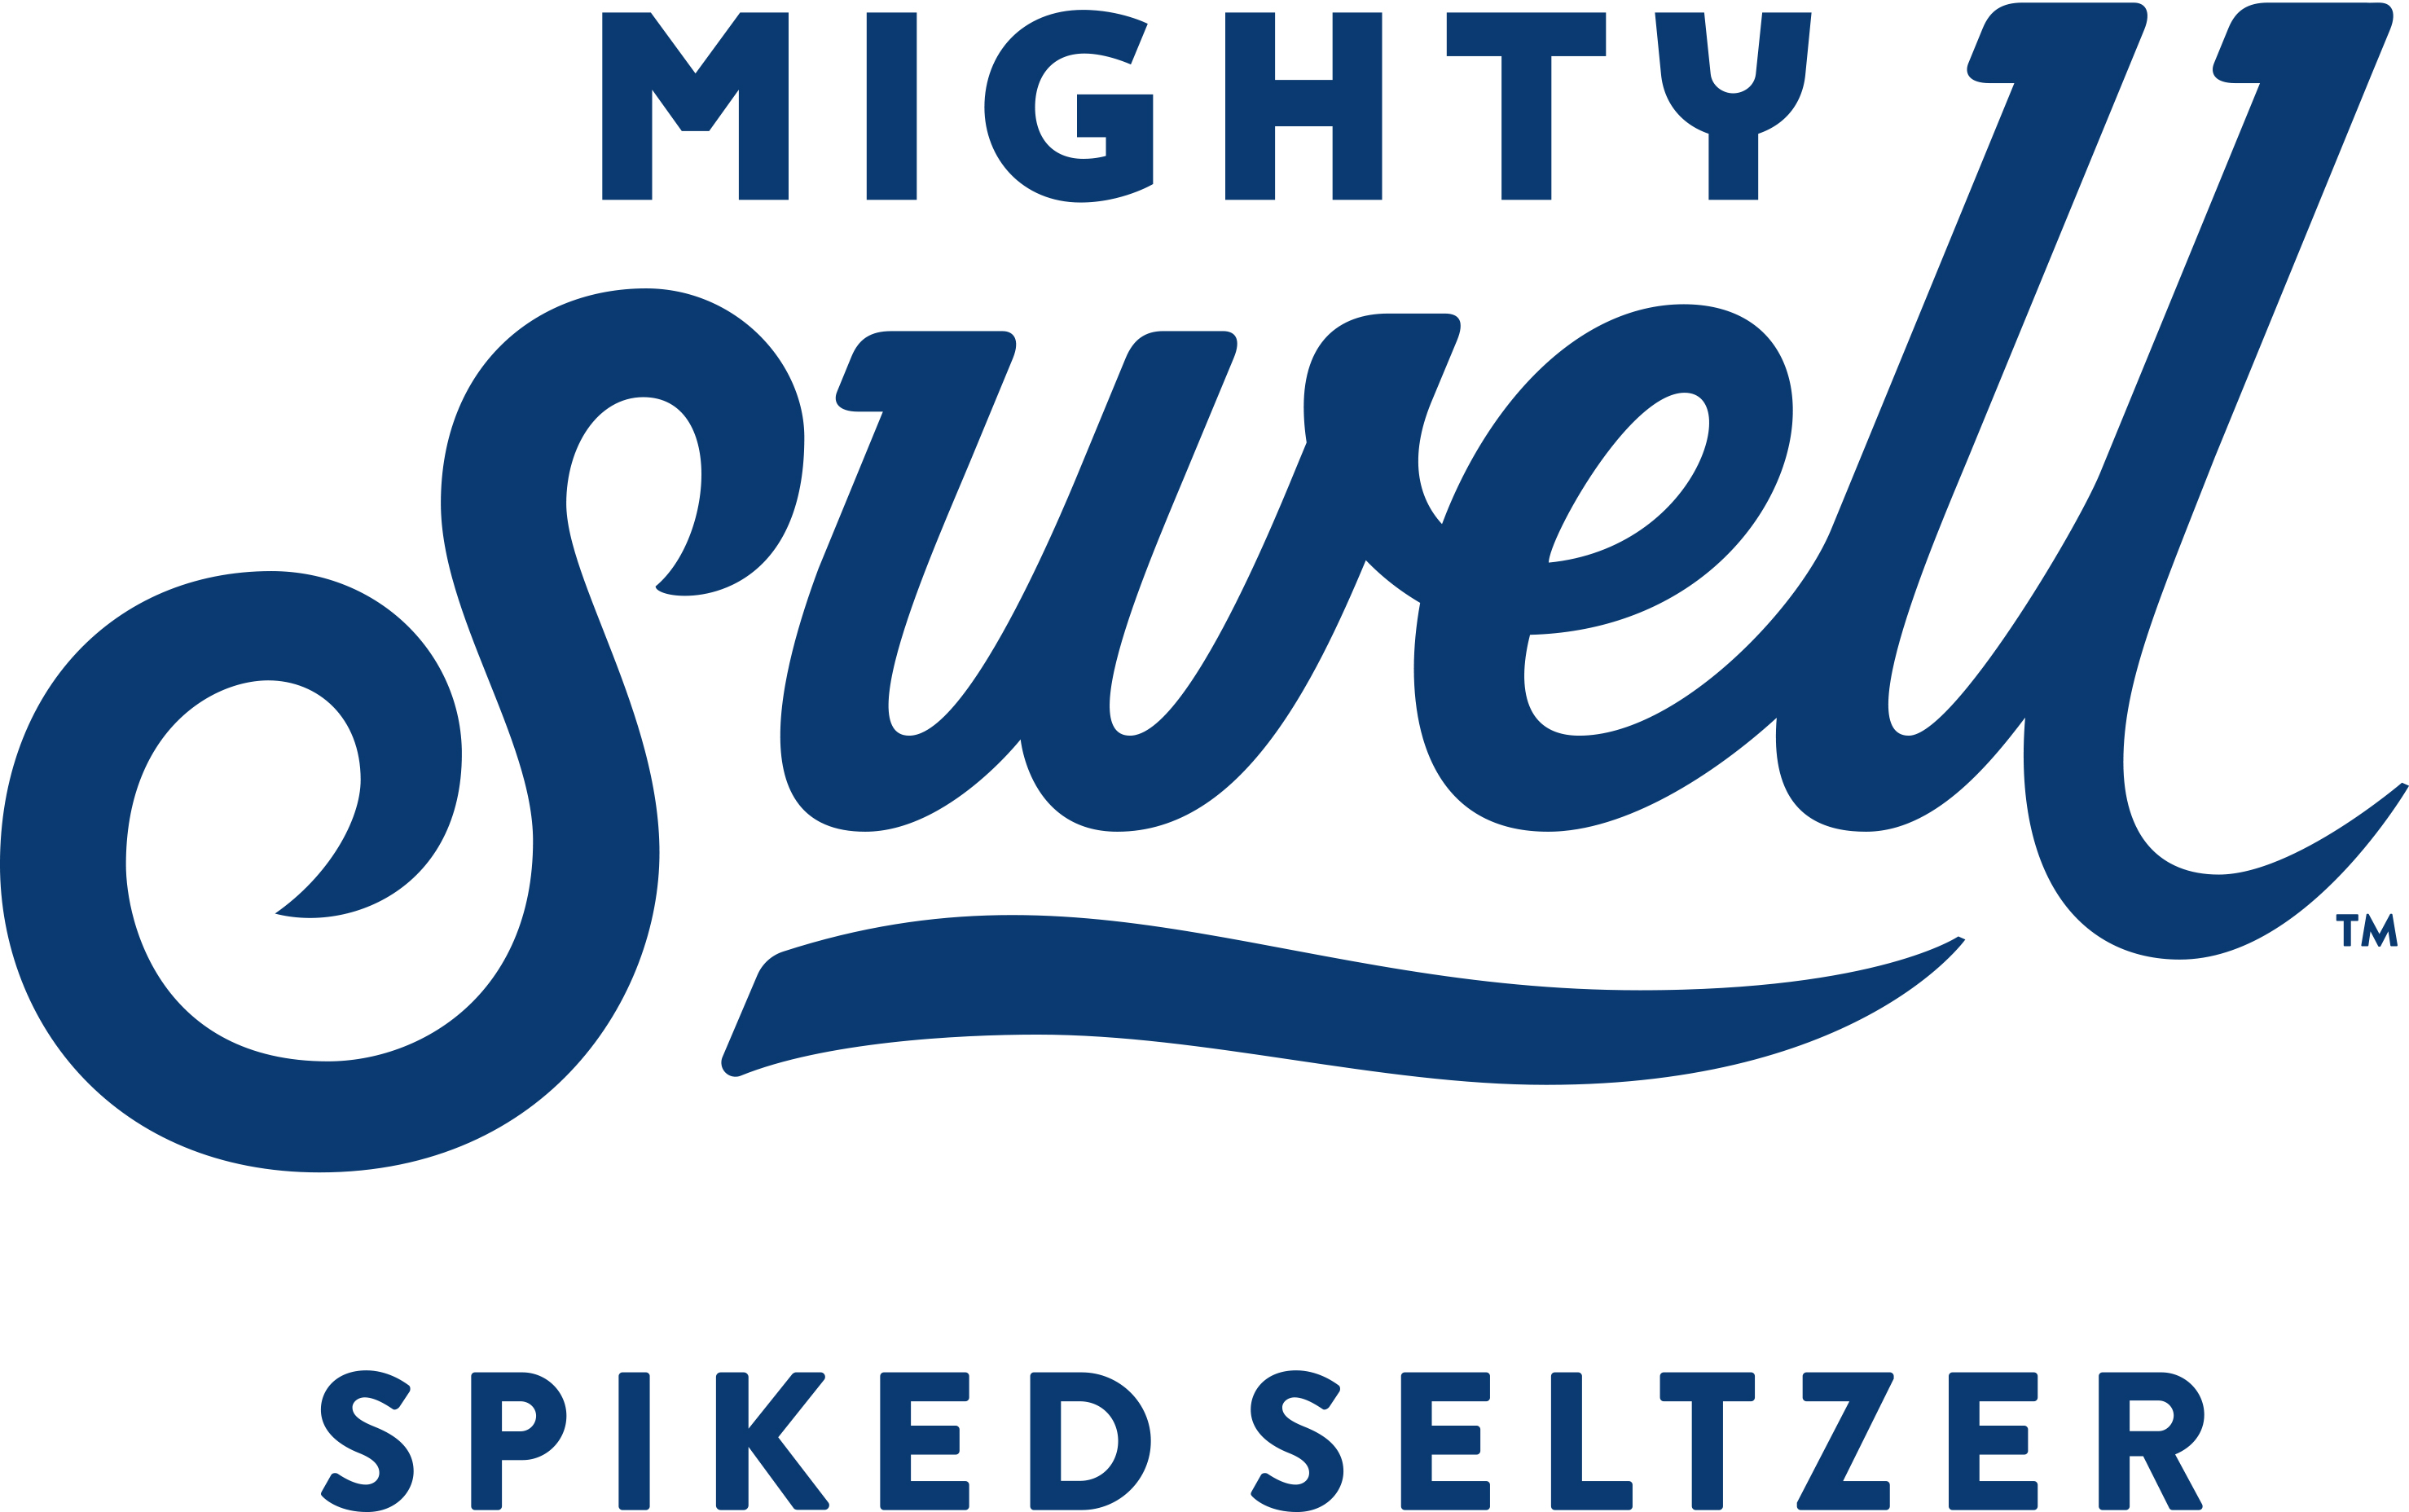 Mighty Swell Spiked Seltzer